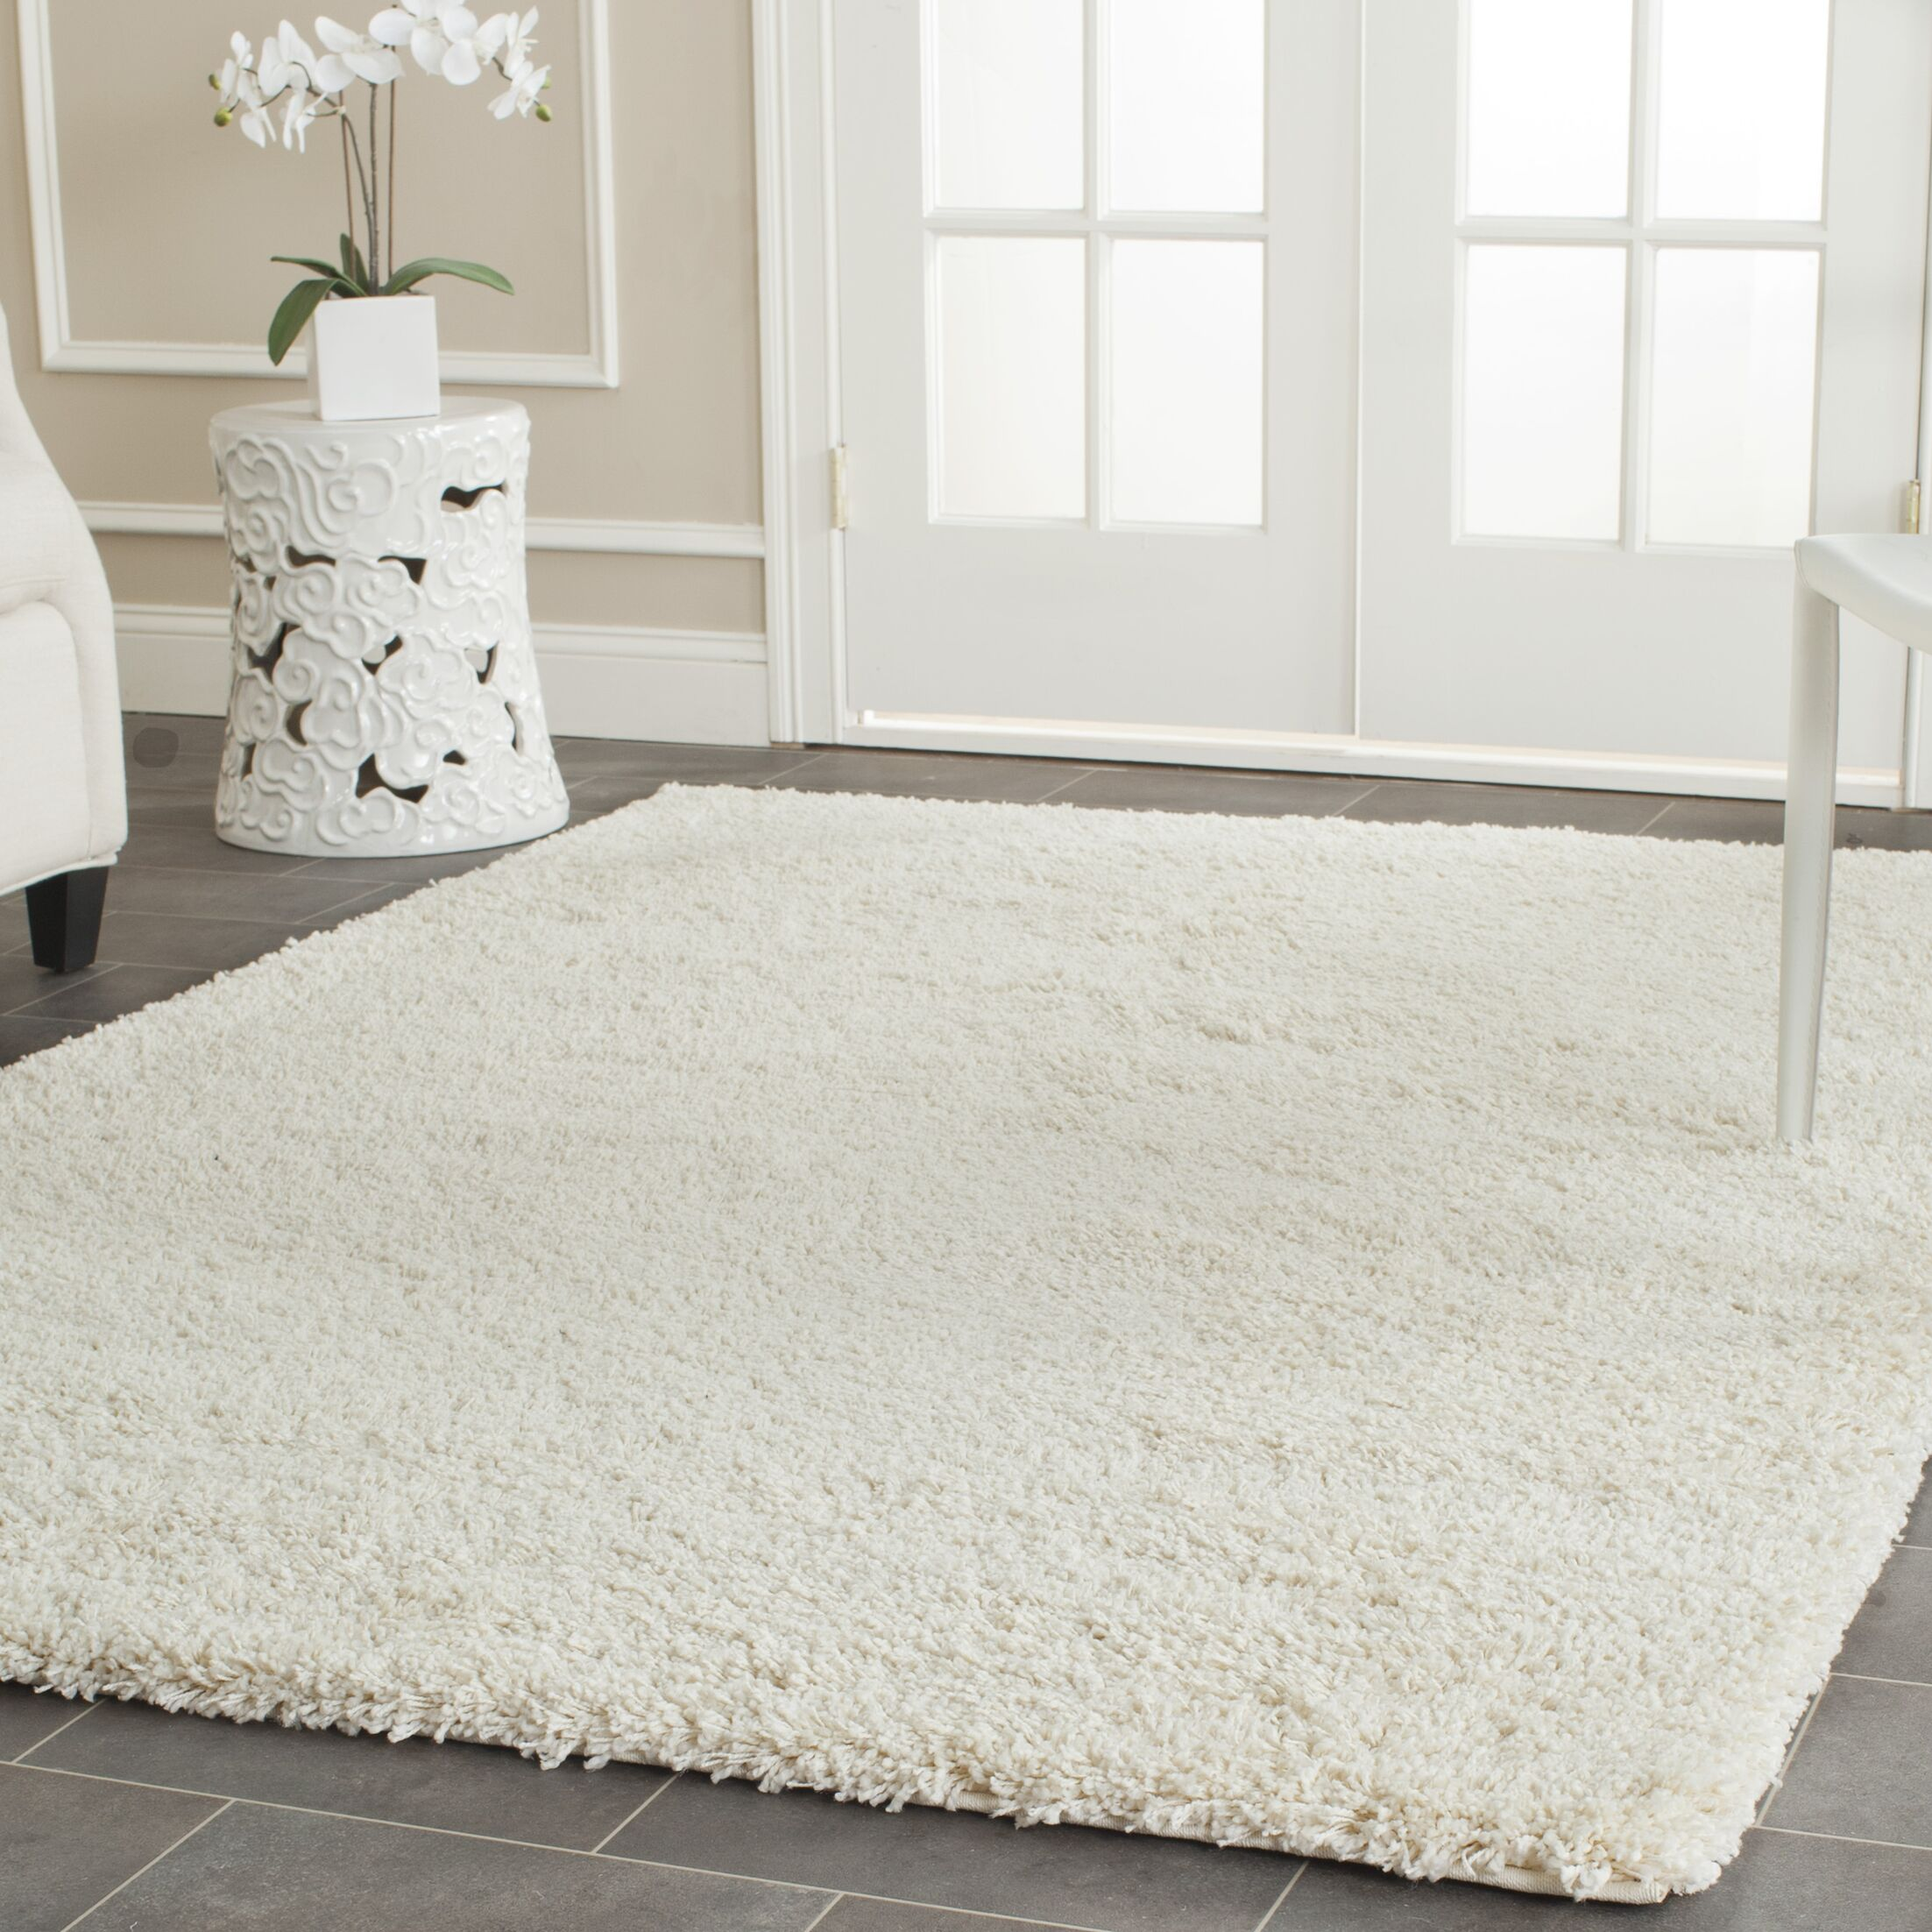 Mckeehan Shag and Flokati Ivory Area Rug Rug Size: Rectangle 8' x 10'